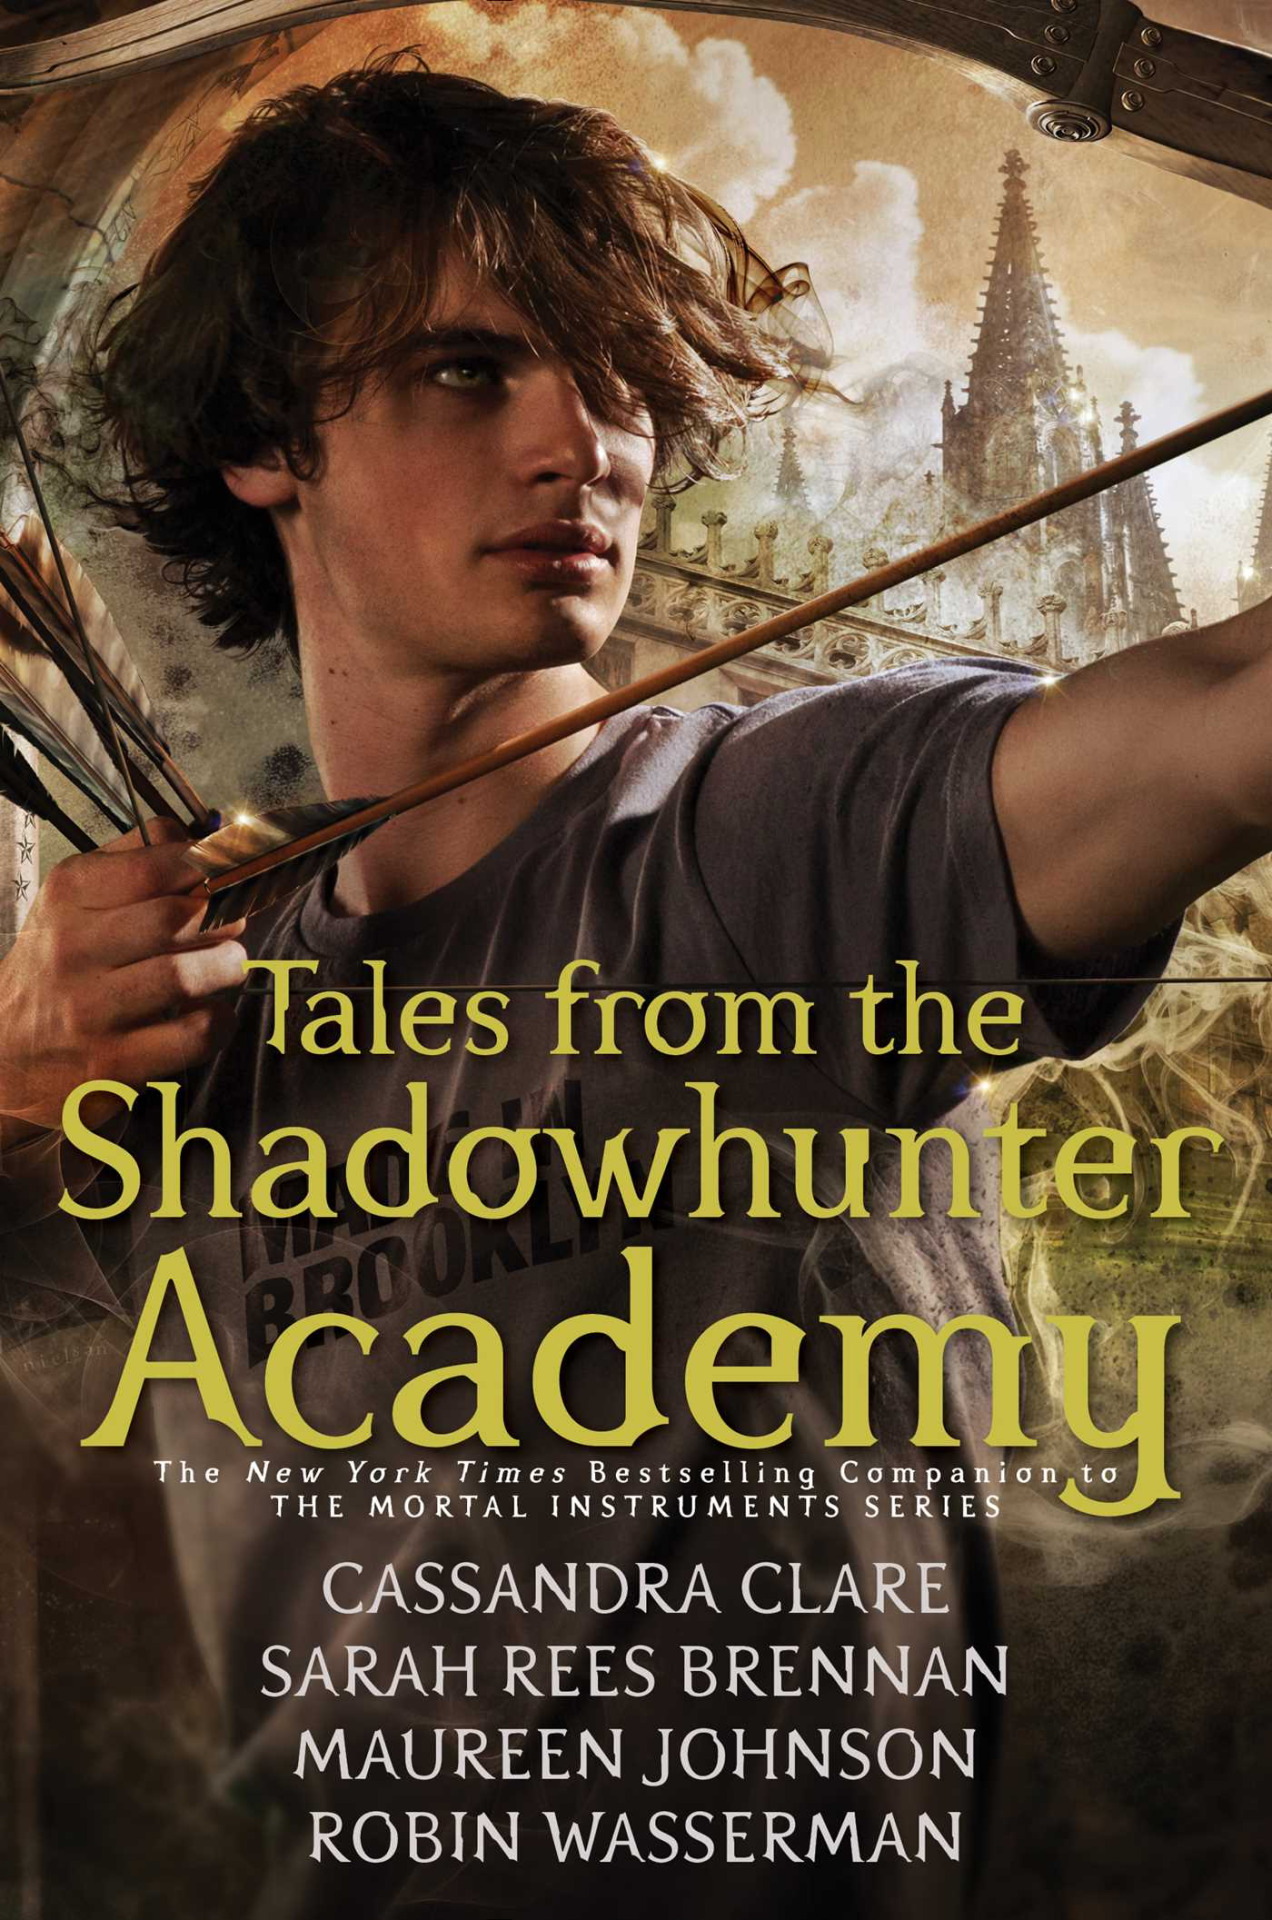 Image result for welcome to shadowhunters academy book